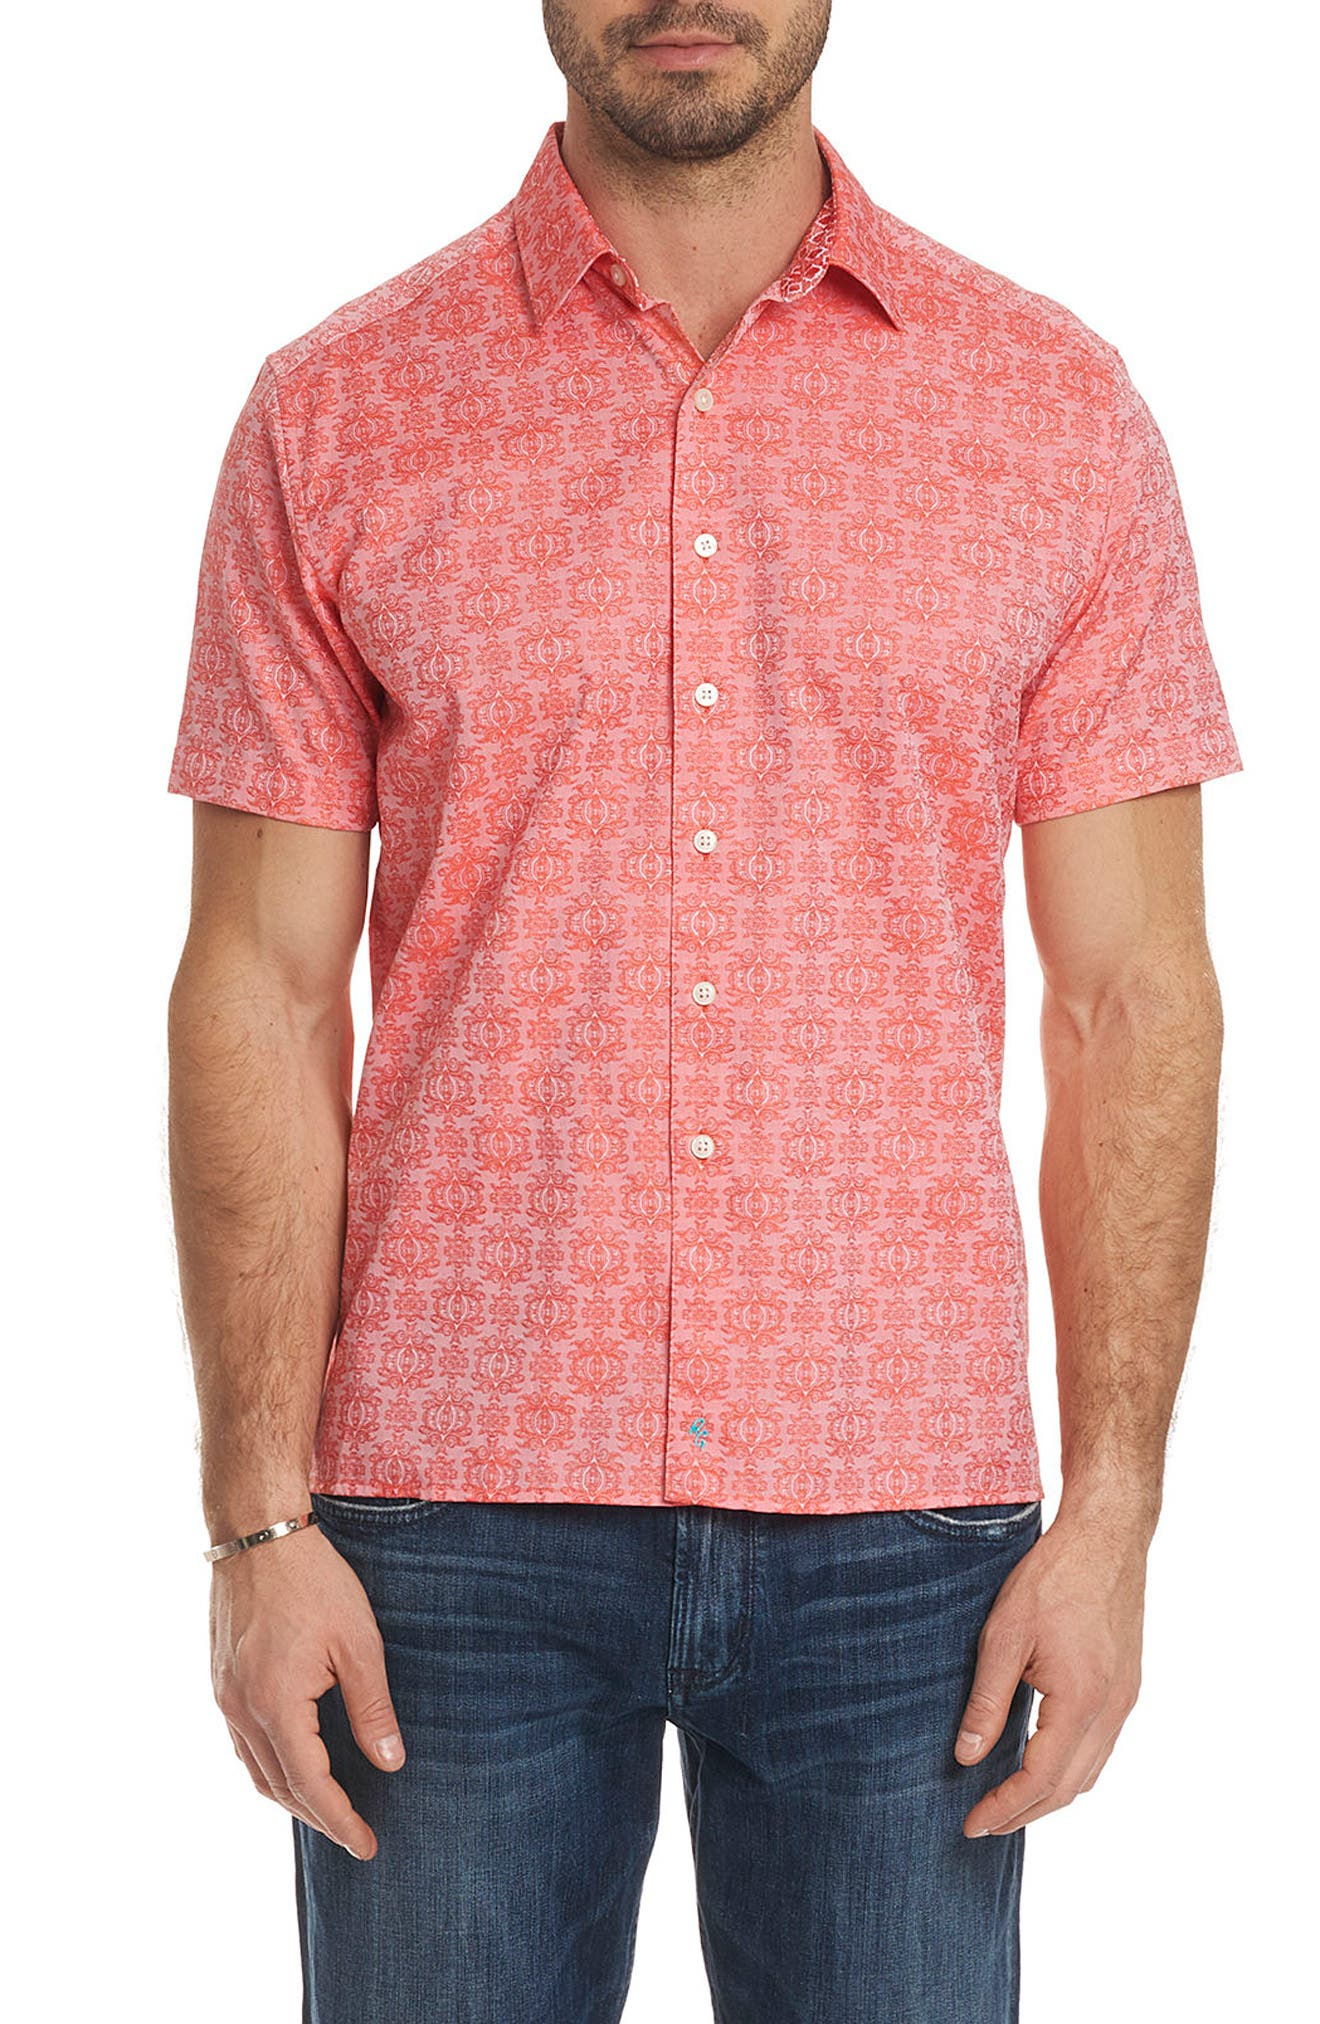 Cullen Squared Regular Fit Short Sleeve Sport Shirt,                             Main thumbnail 1, color,                             Coral